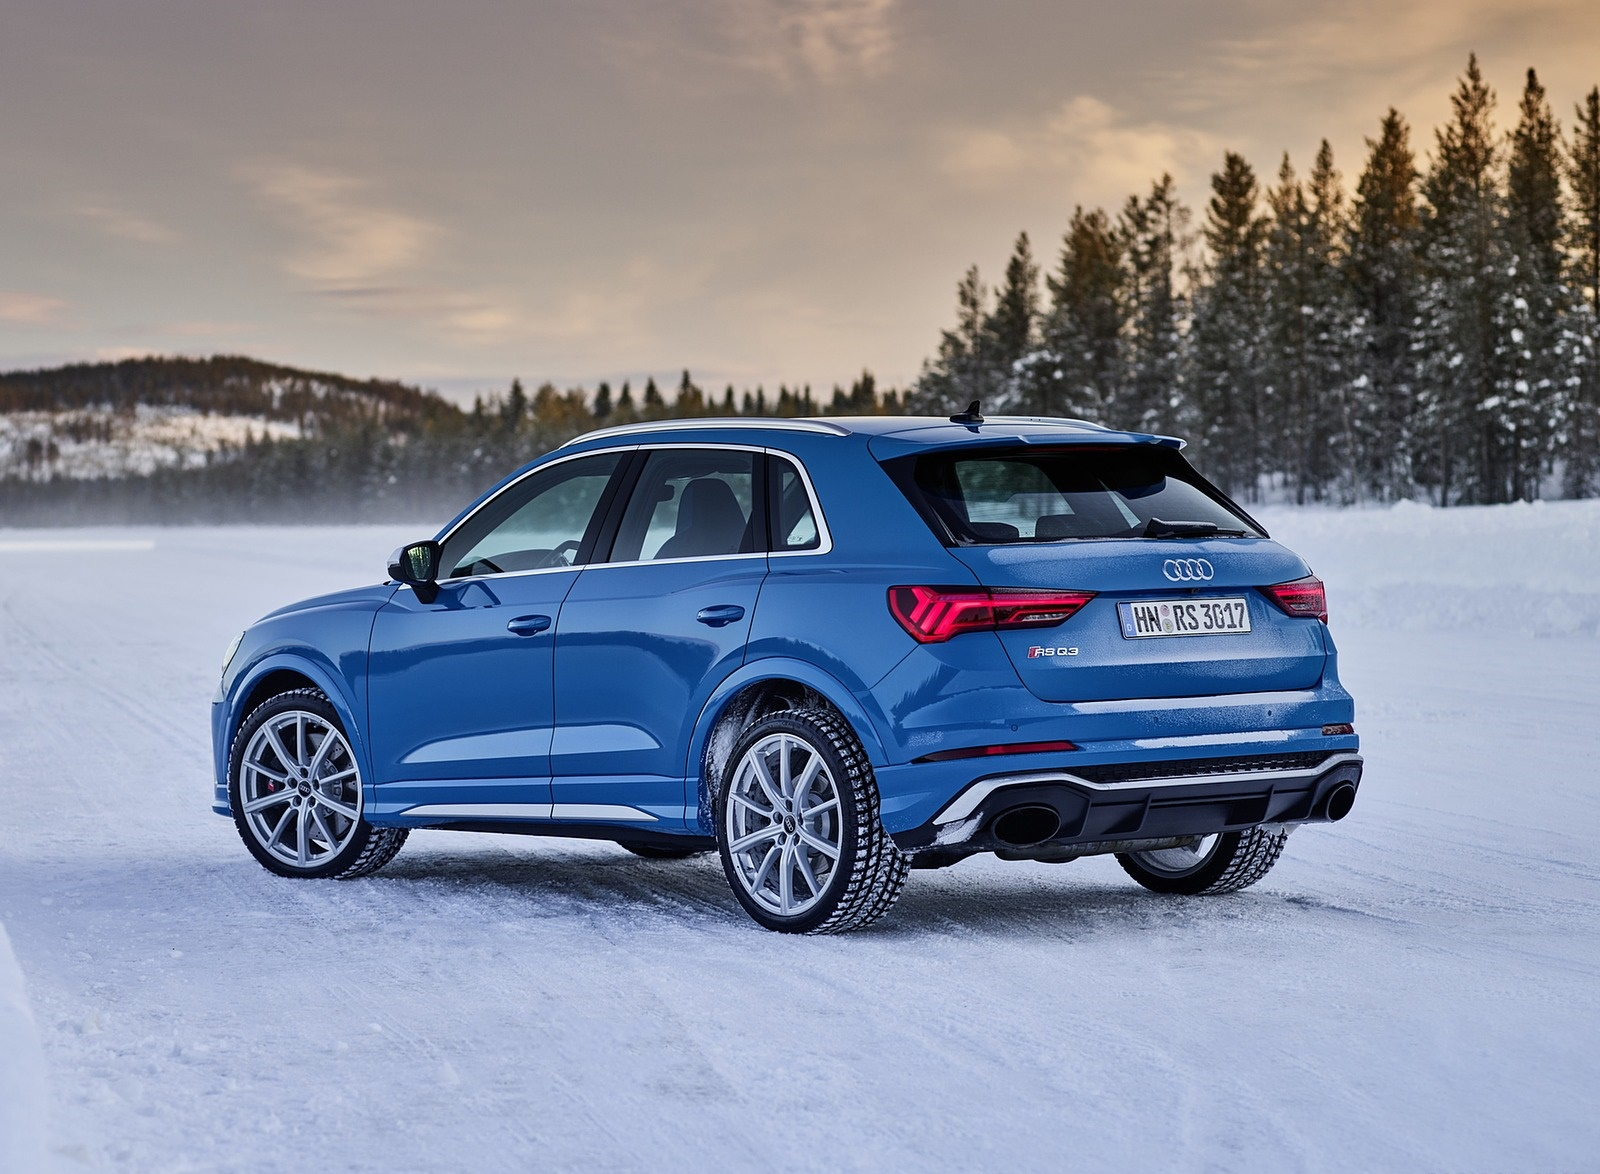 2020 Audi RS Q3 (Color: Turbo Blue) Rear Three-Quarter Wallpapers #47 of 116